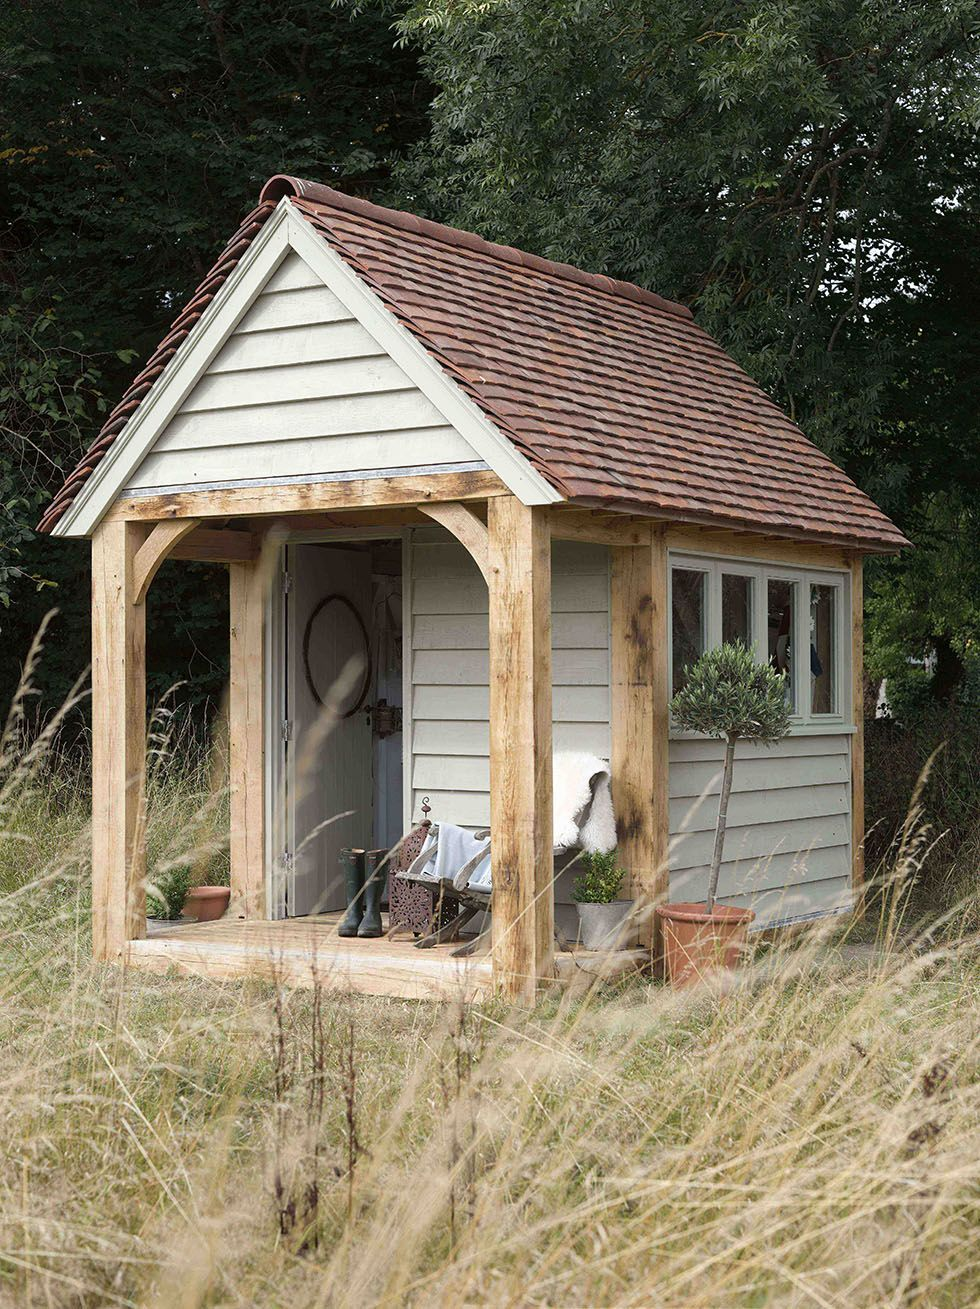 Garden Sheds   Period Living. Like The Porch But Prefer To Be Closed In Up  To Waist Height